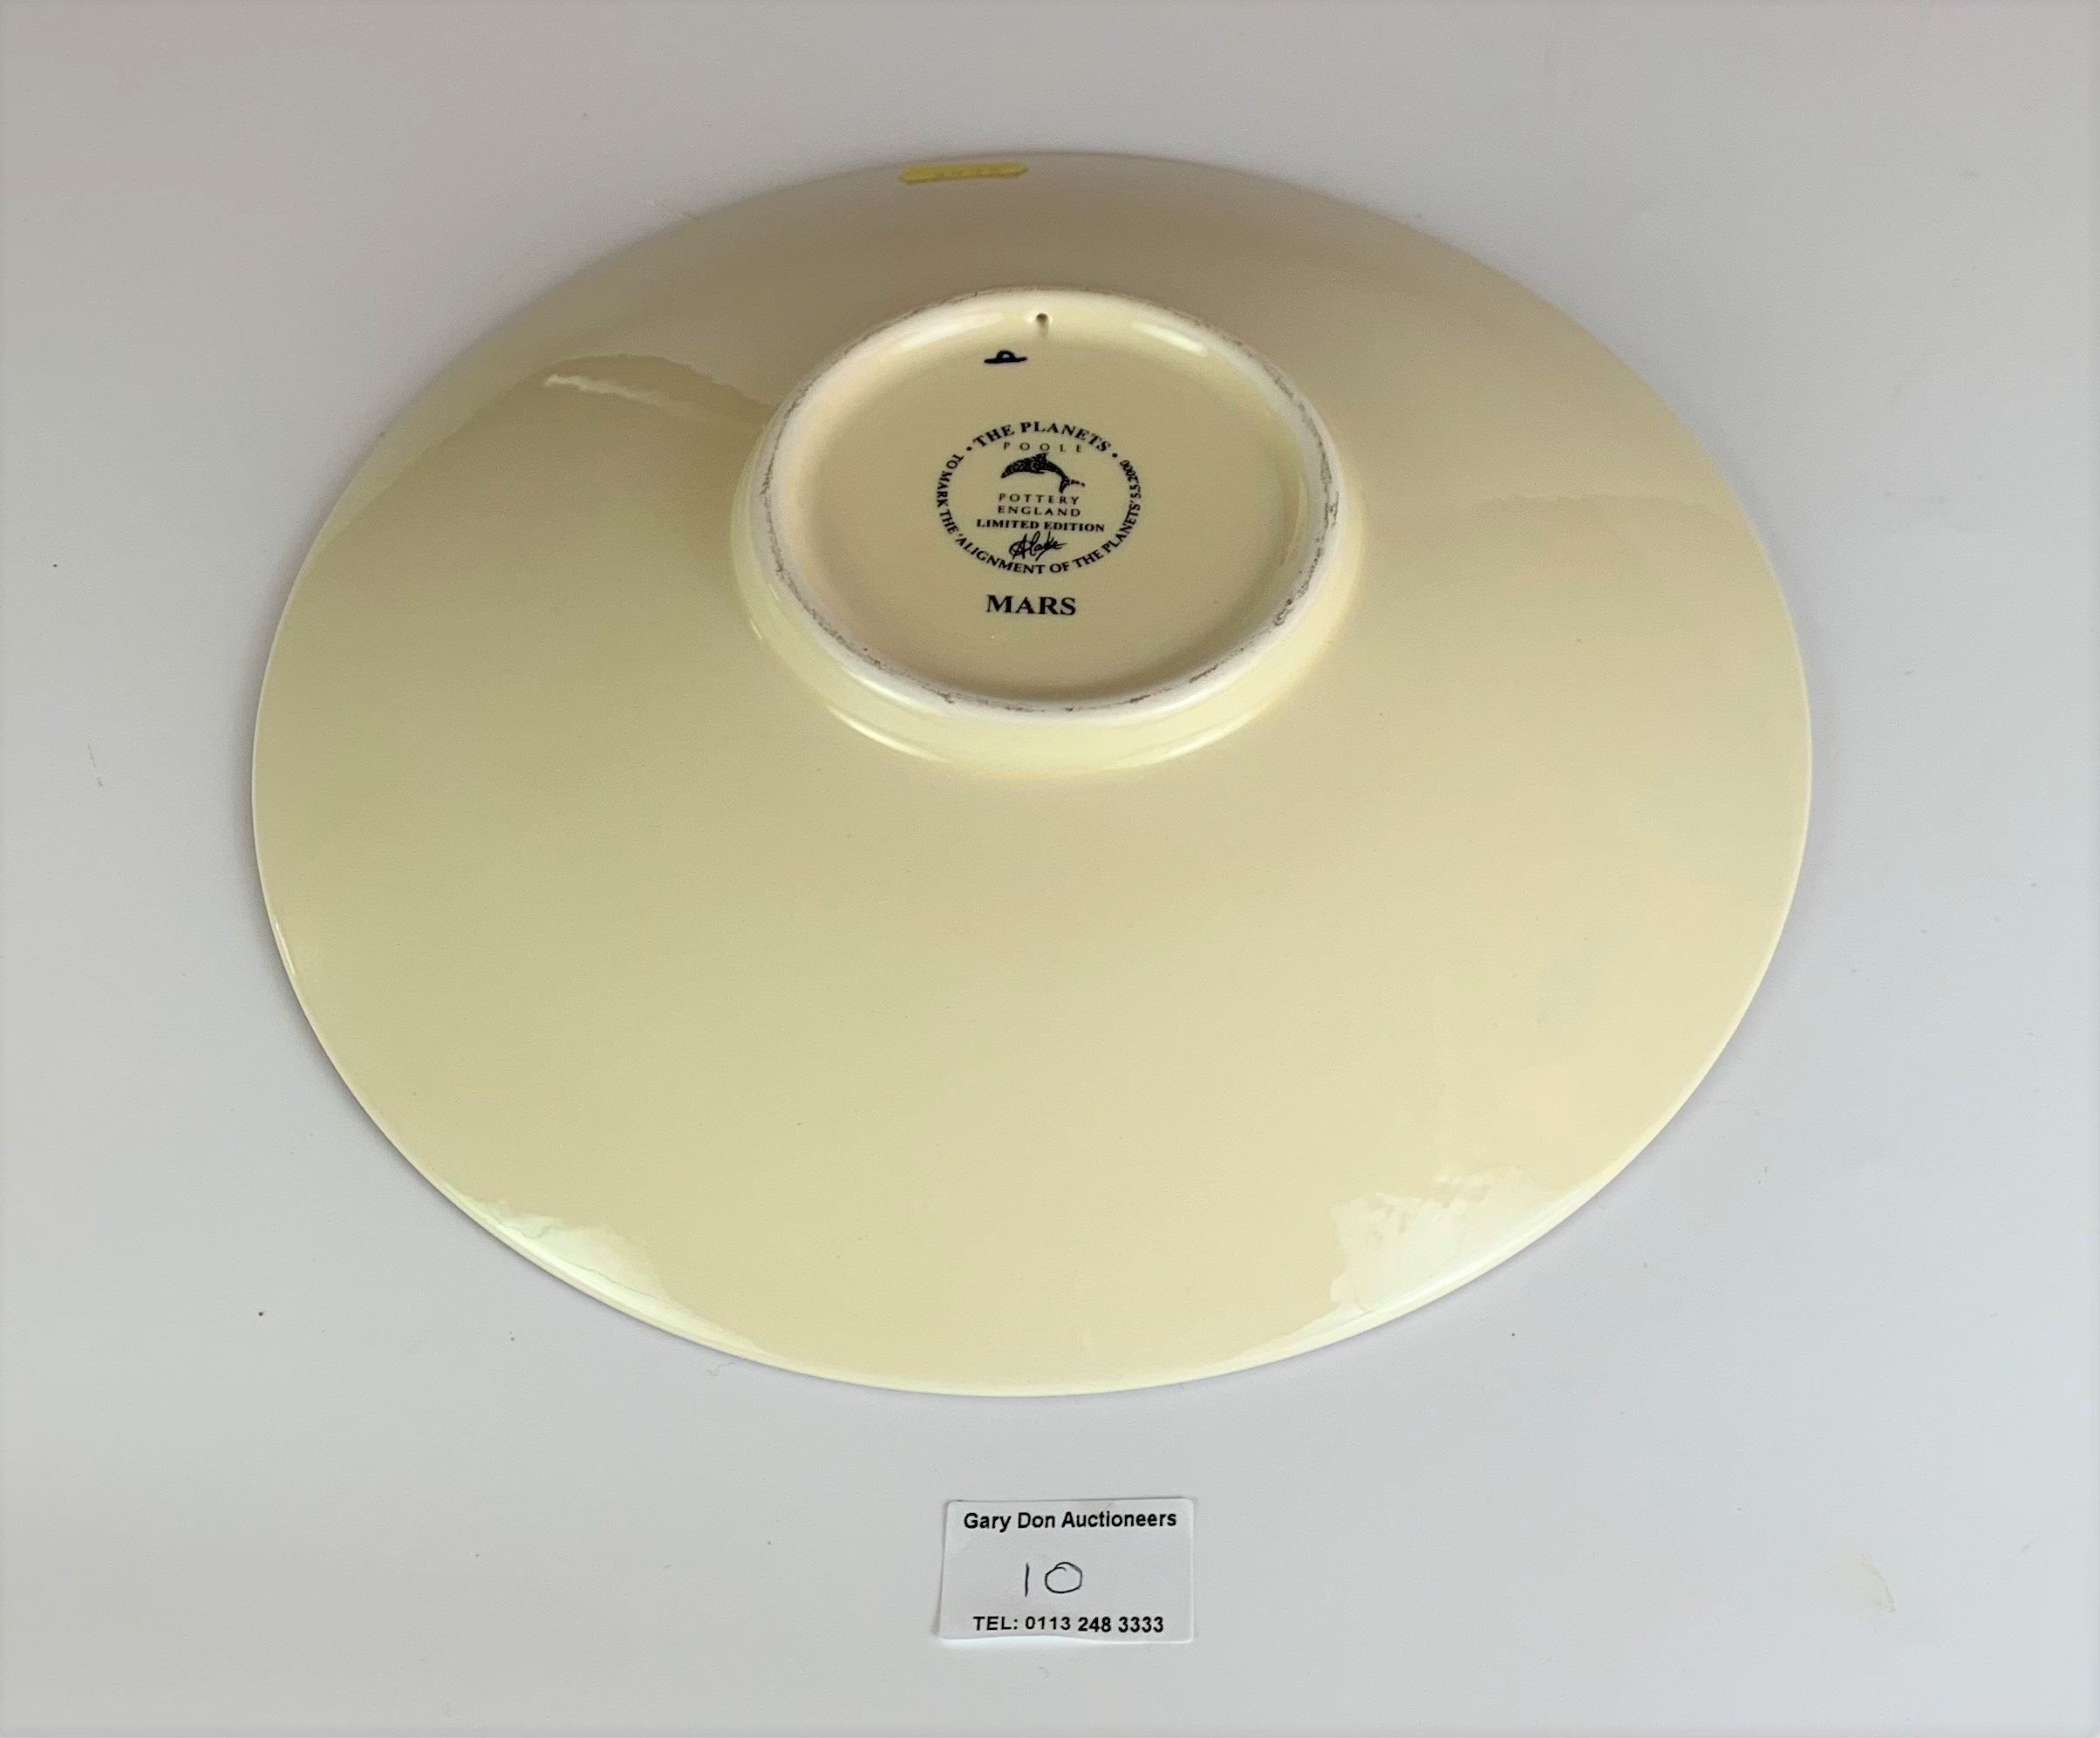 """Limited edition Poole plate, Mars, to mark the Alignment of the Planets 2000, 10.5"""" diameter, no - Image 6 of 7"""